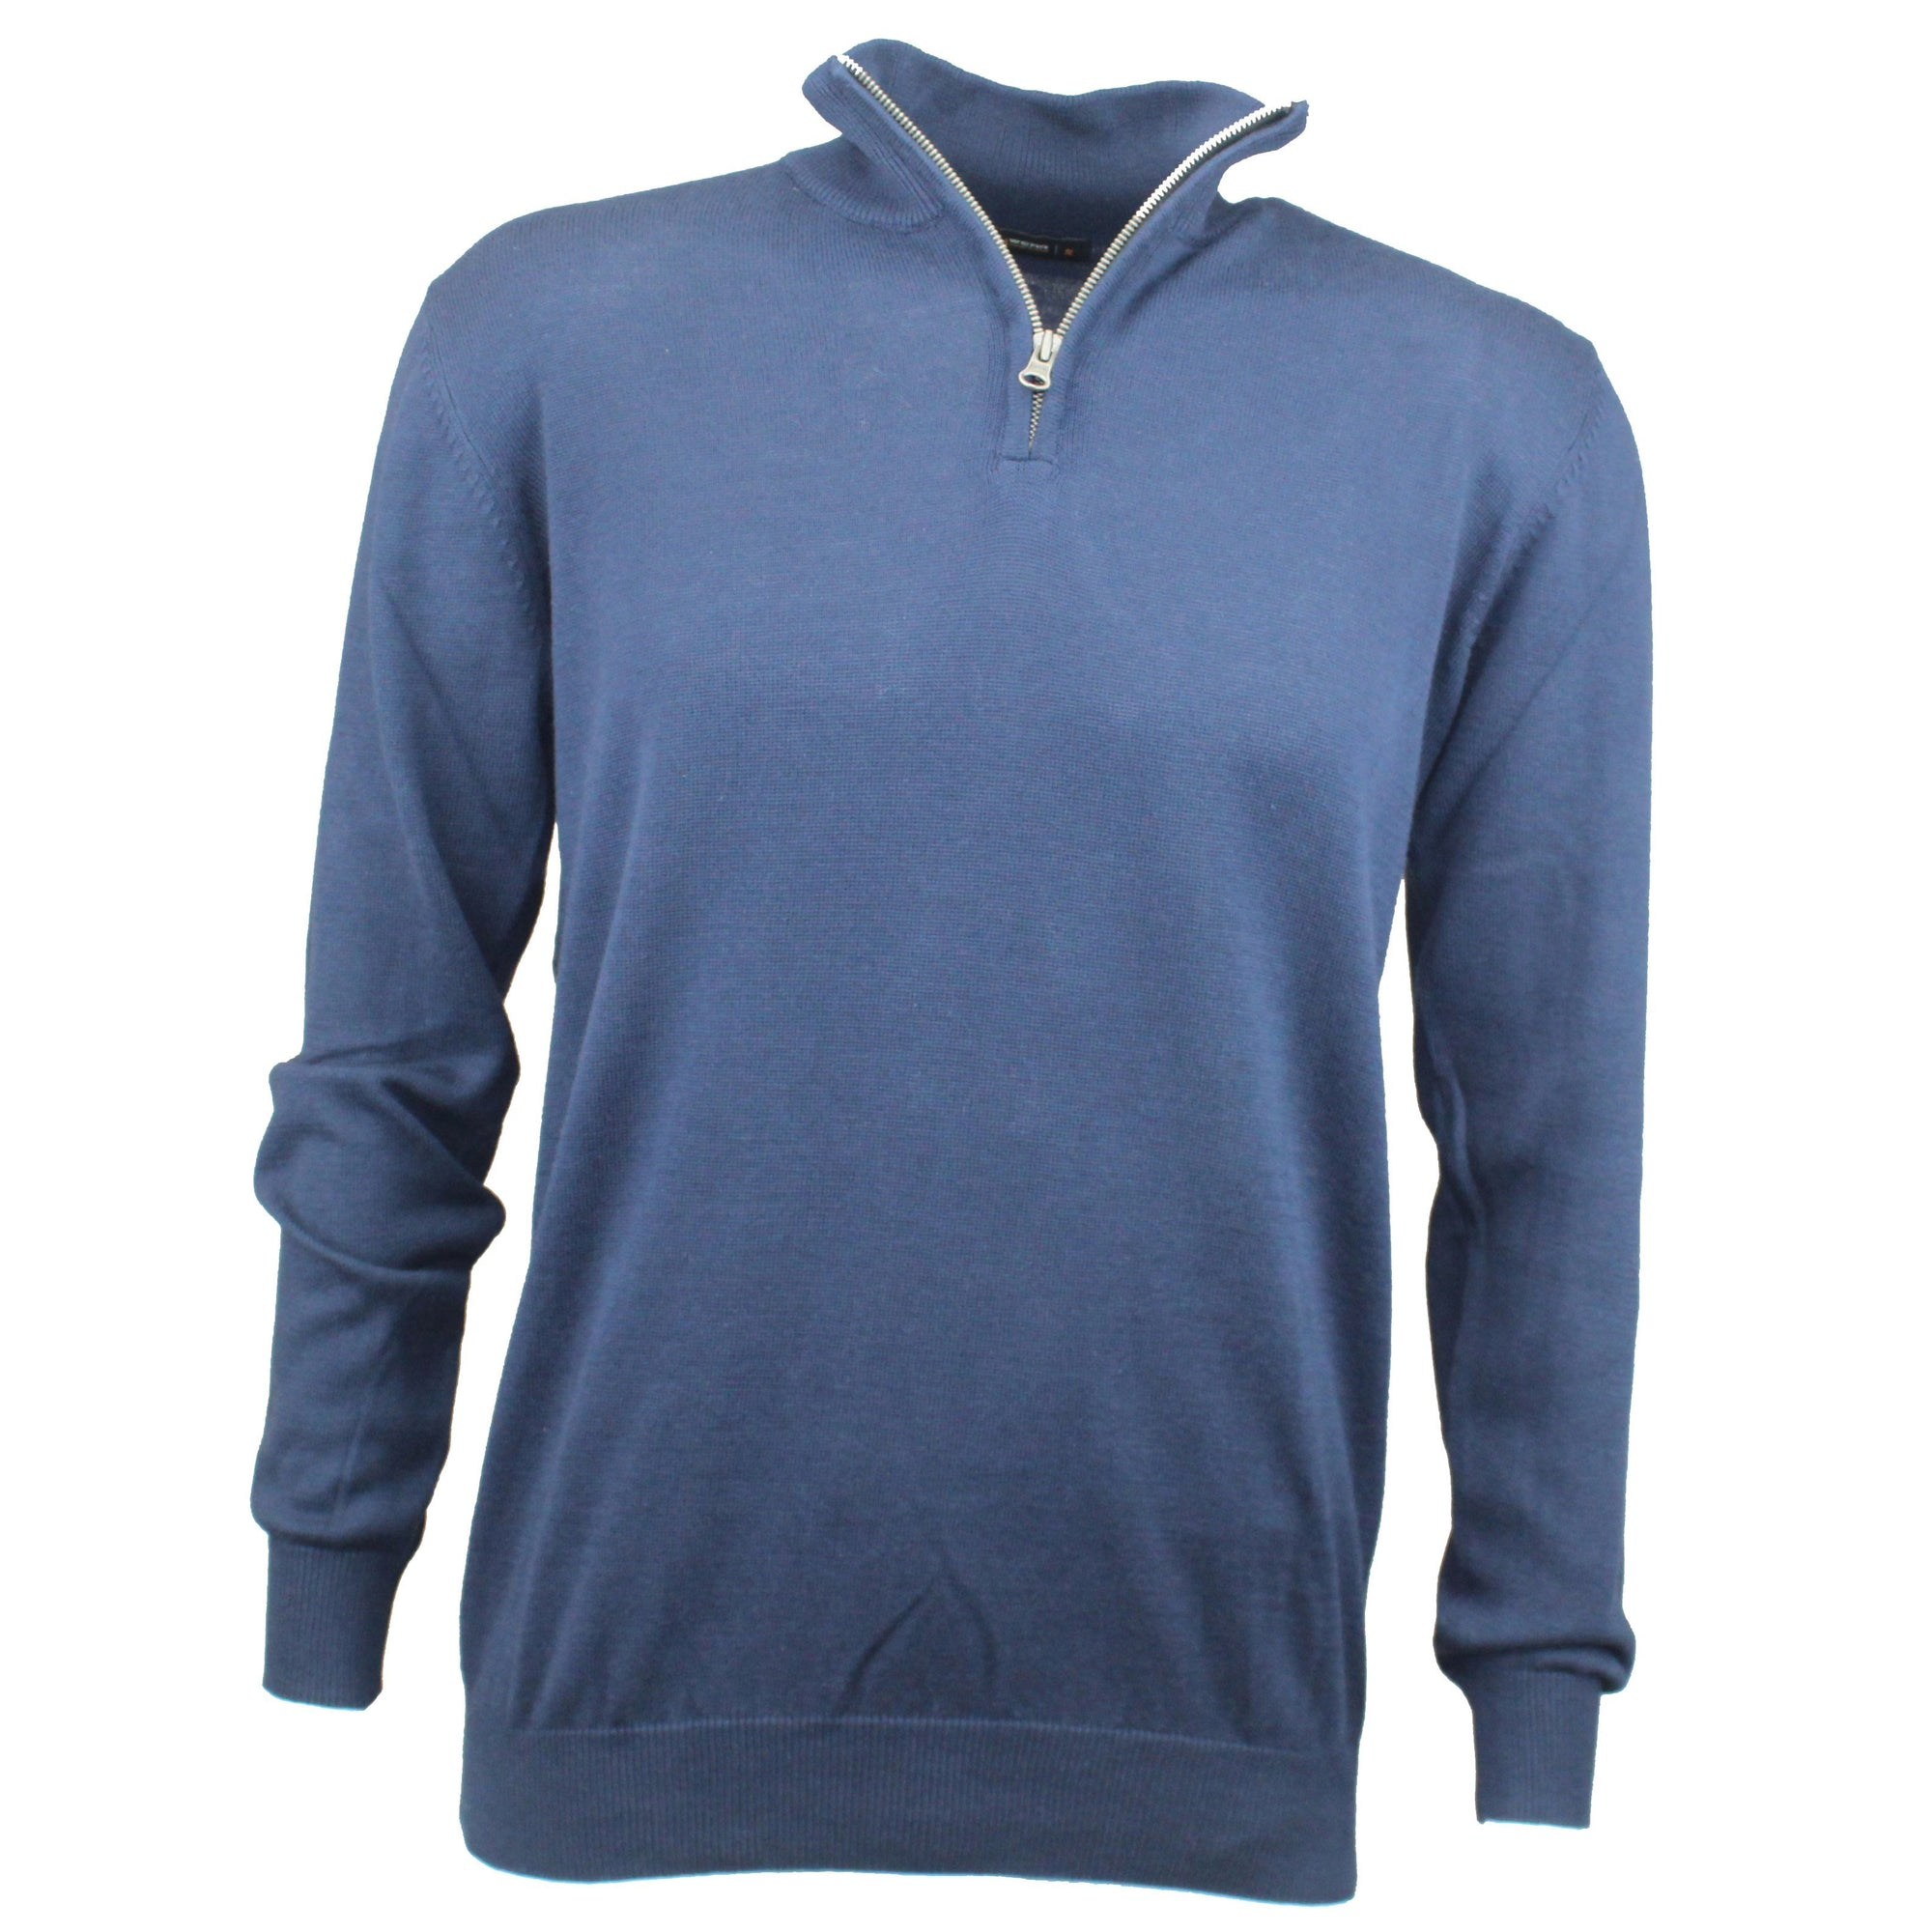 Druids Golf - Cotton Zip Neck Sweater (Navy)